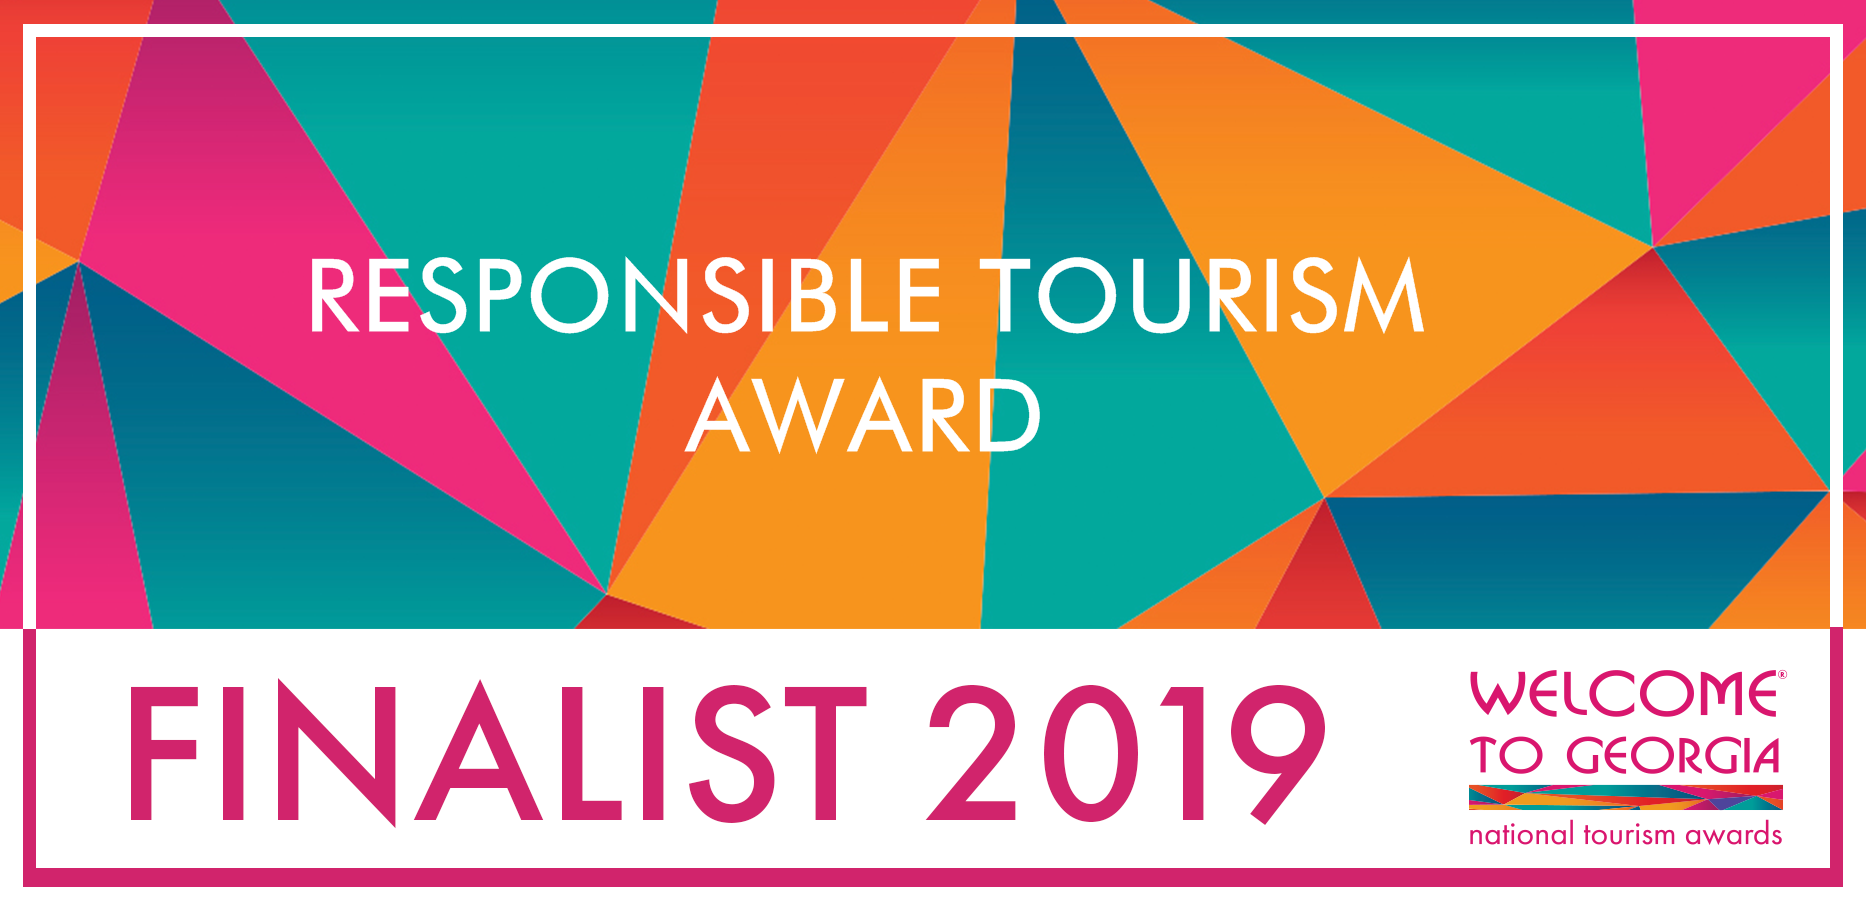 Best in Responsible Tourism in Georgia 2019